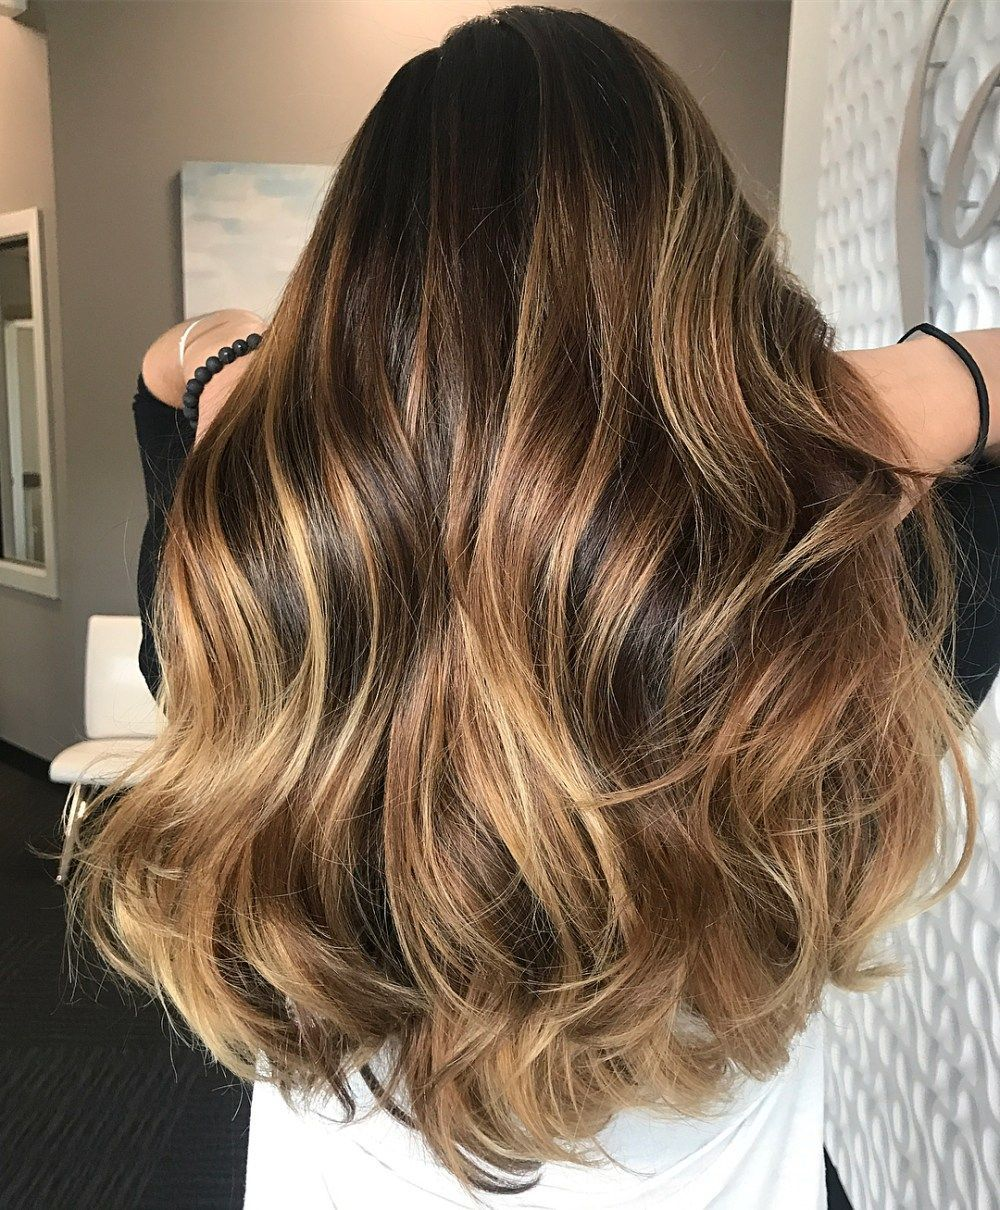 #16: Bronde Balayage Waist-Length Hair | 20 Honey Balayage Pictures That Really Inspire to Try Highlights; #HoneyBalayage #BalayageHair #HairColor #blondehairstyles